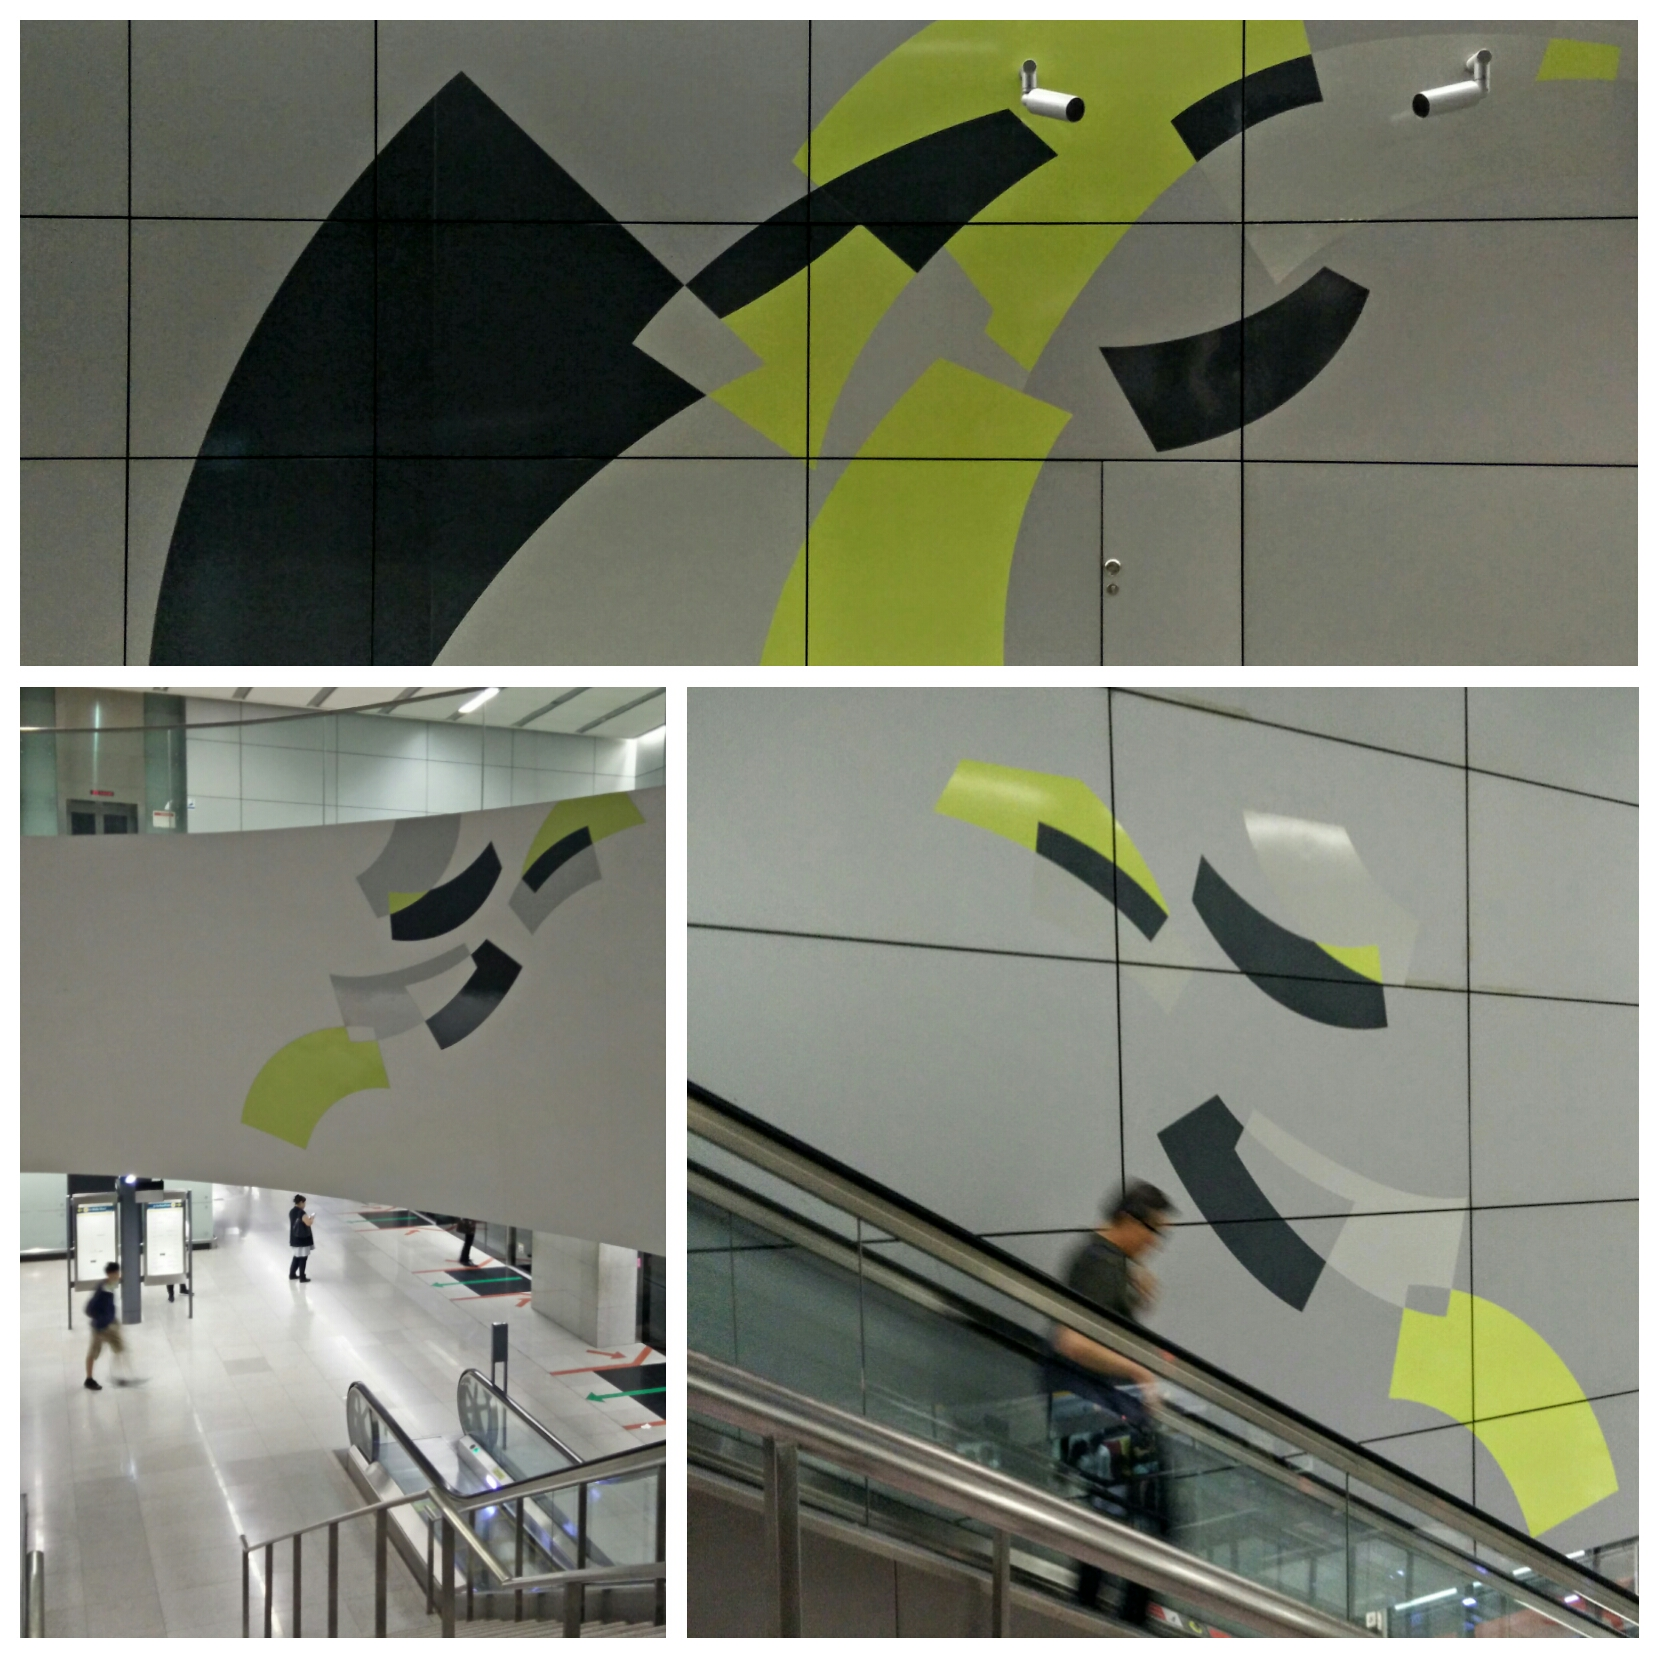 Graphic design art in subway station